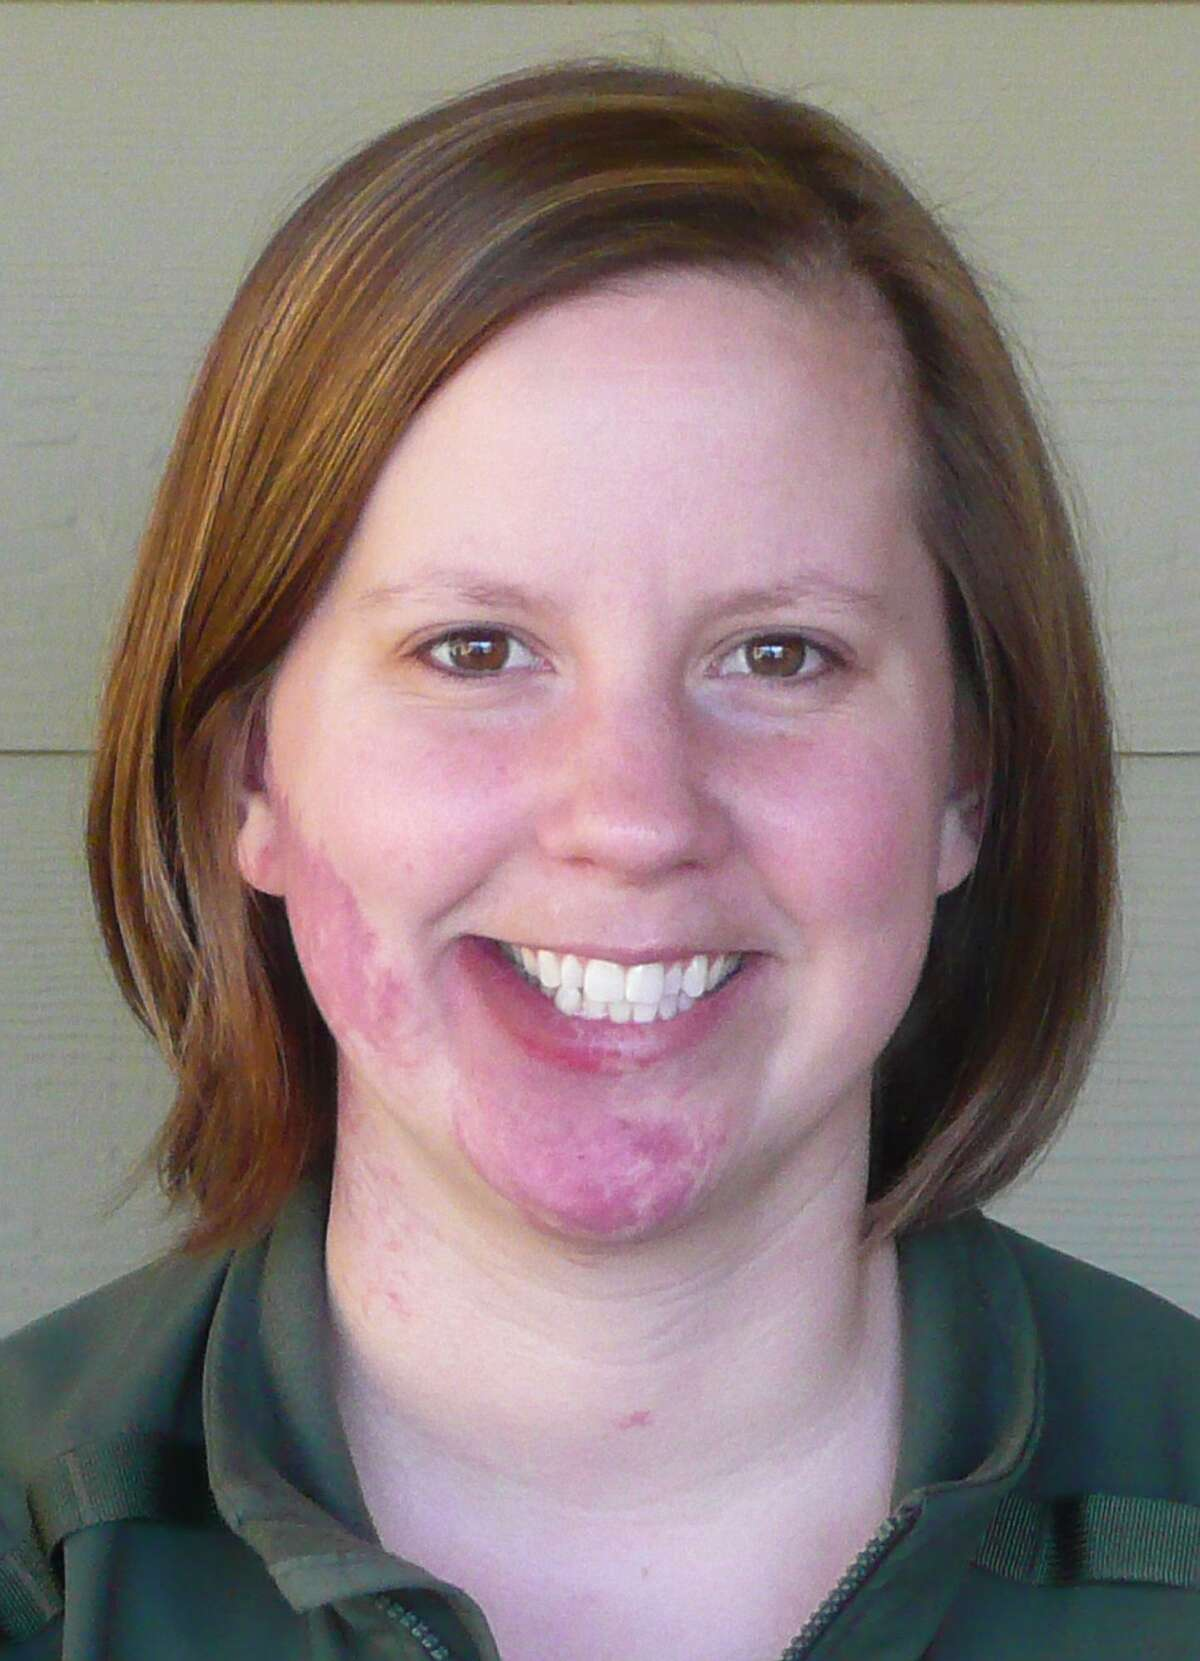 This undated photo provided by Mount Rainier National Park shows park Ranger Margaret Anderson. Anderson, 34, was fatally shot Sunday at Mount Rainier National Park in Washington state, according to the National Park Service. Officials closed the park after the shooting Sunday, and asked people to stay out of the area while they search for a man carrying a long rifle. (AP Photo/Mount Rainier National Park)